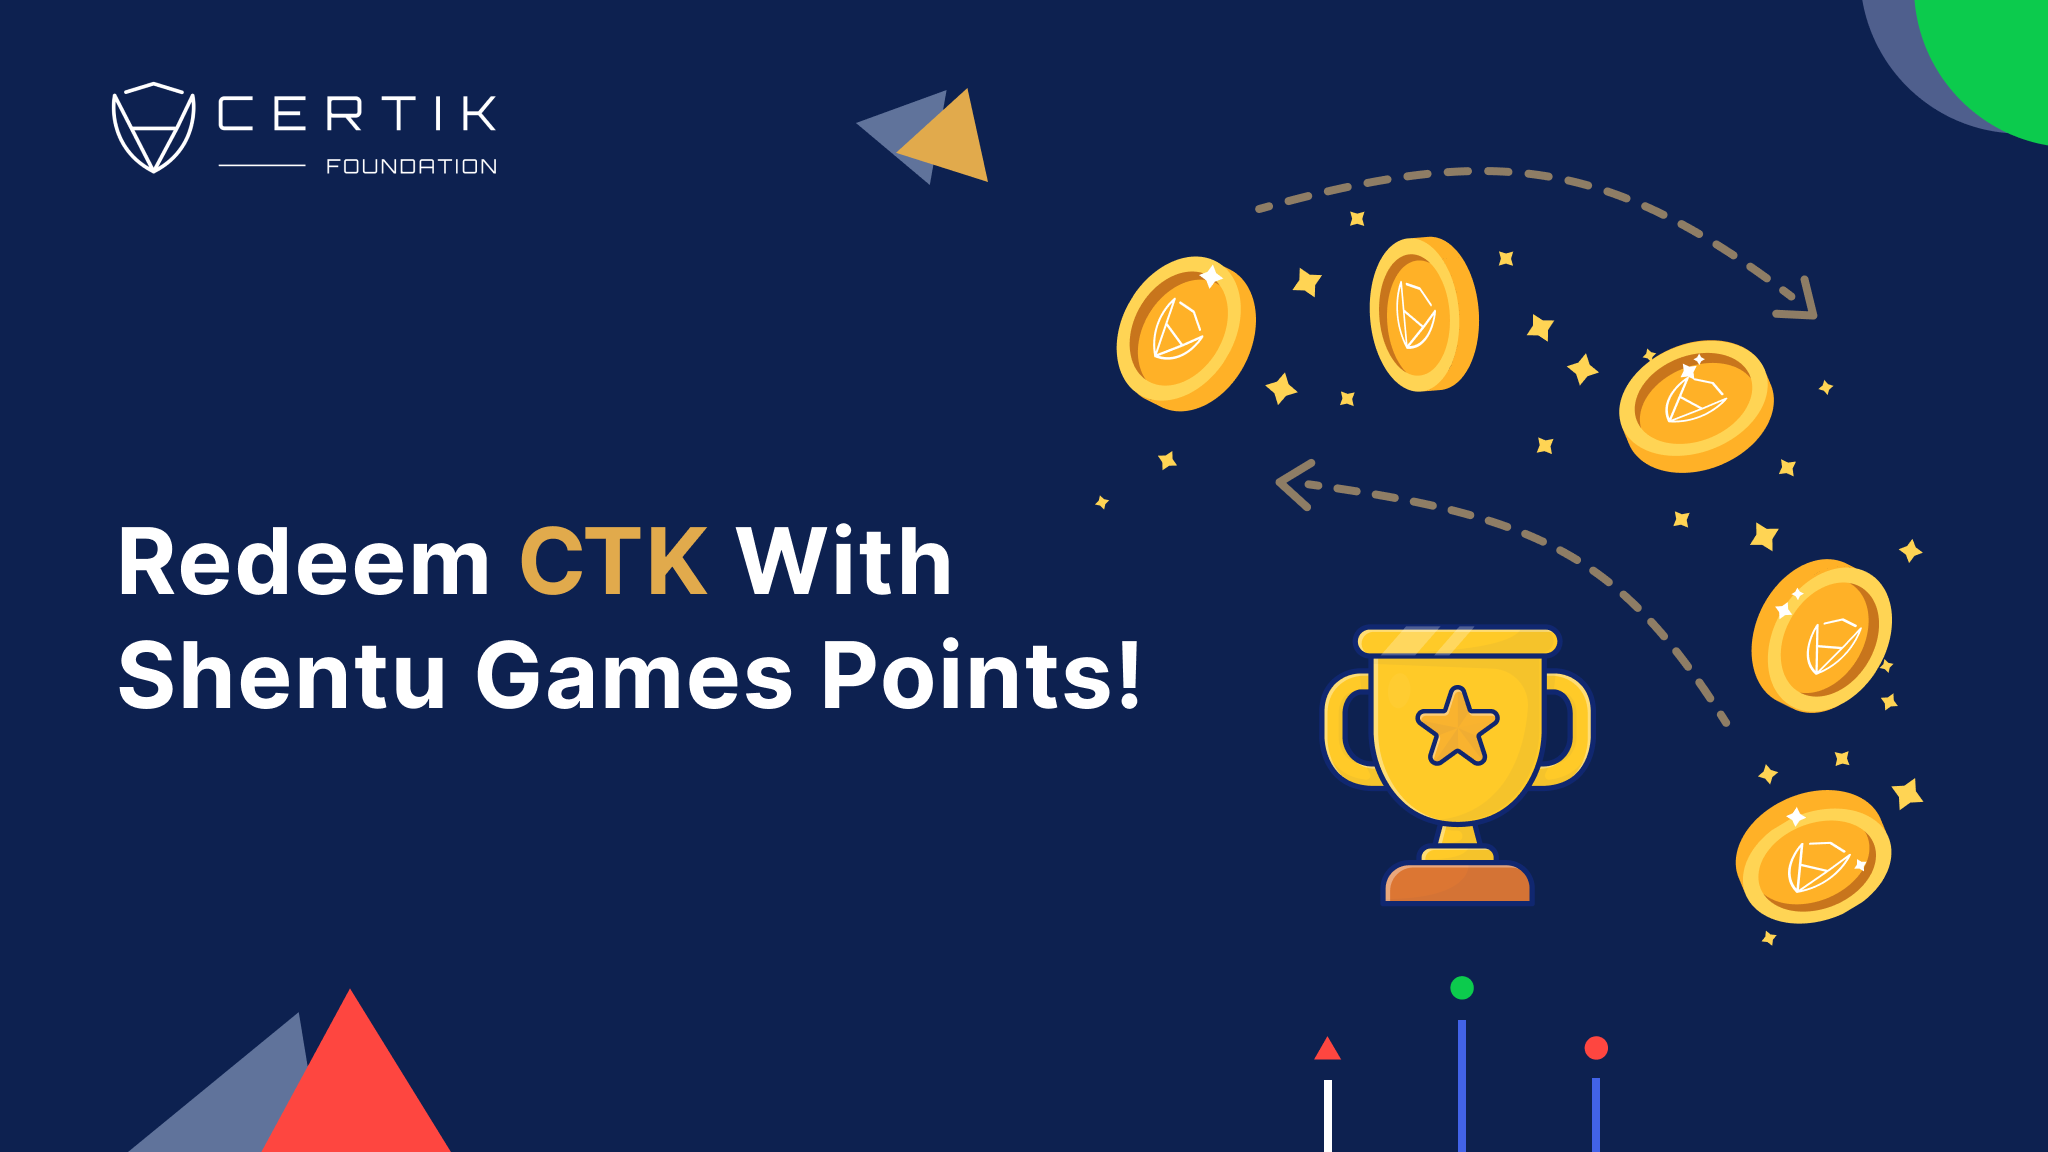 Redeem CTK With Shentu Games Points